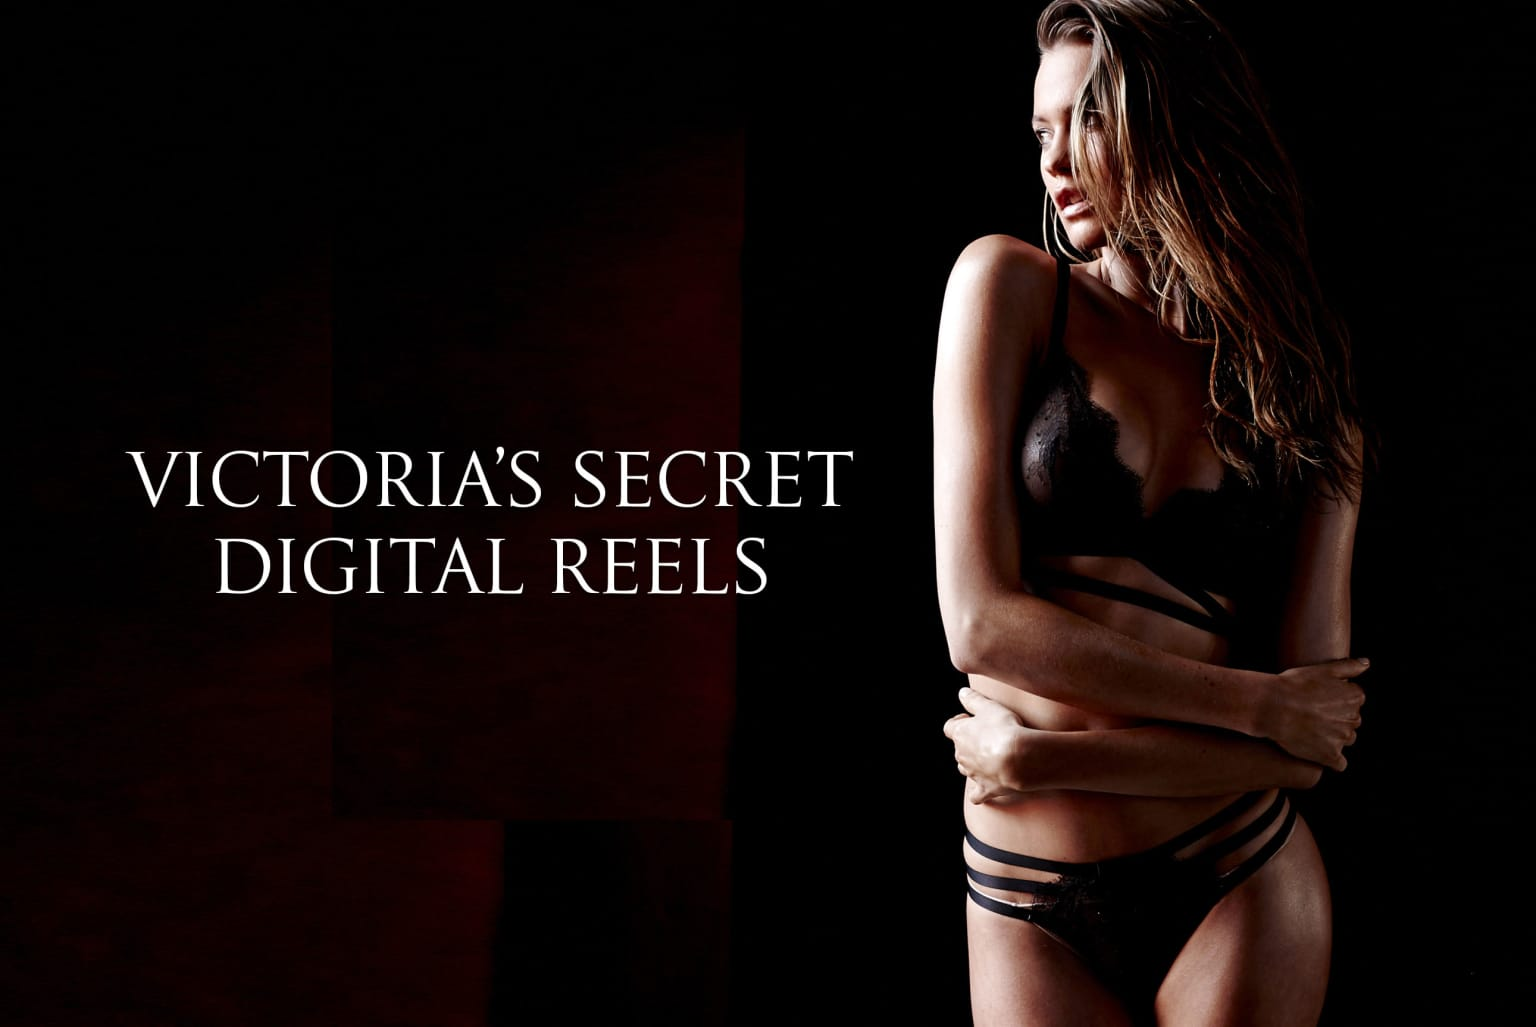 Victoria's Secret Digital Reels